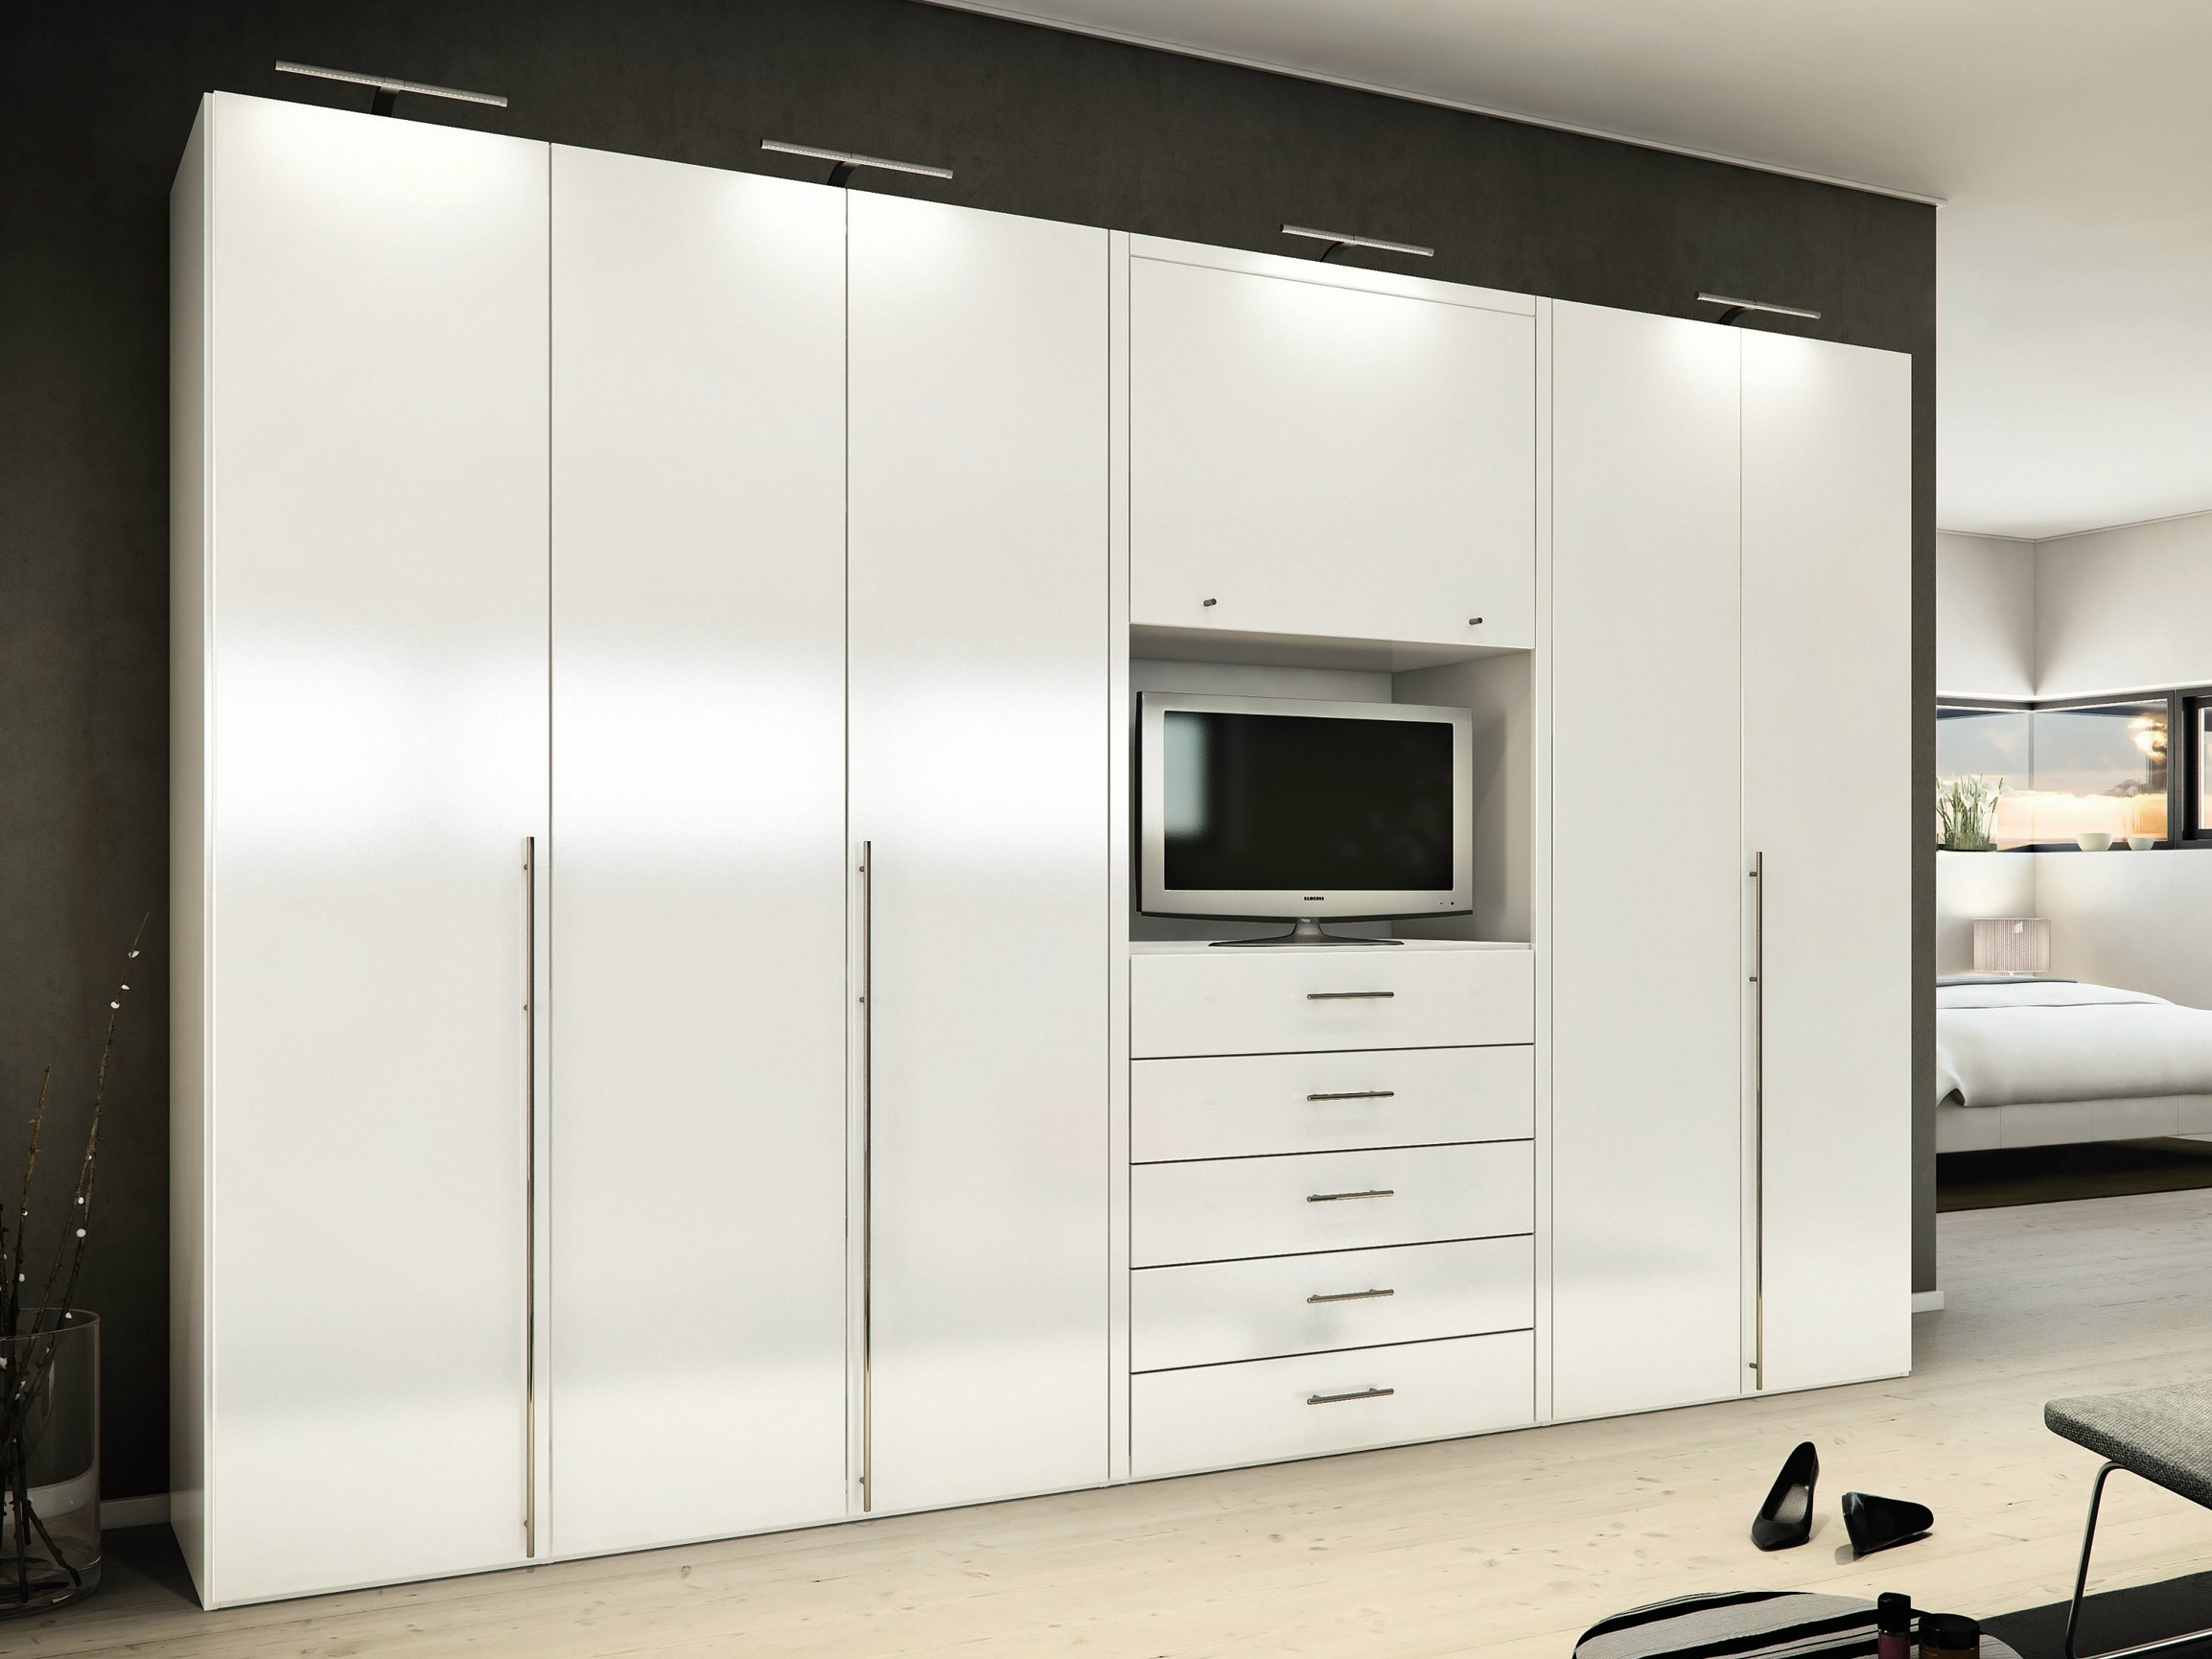 Bedroom Ideas Furniture Mesmerizing White High Gloss Built In Regarding Wardrobe With Drawers And Shelves (Image 1 of 15)